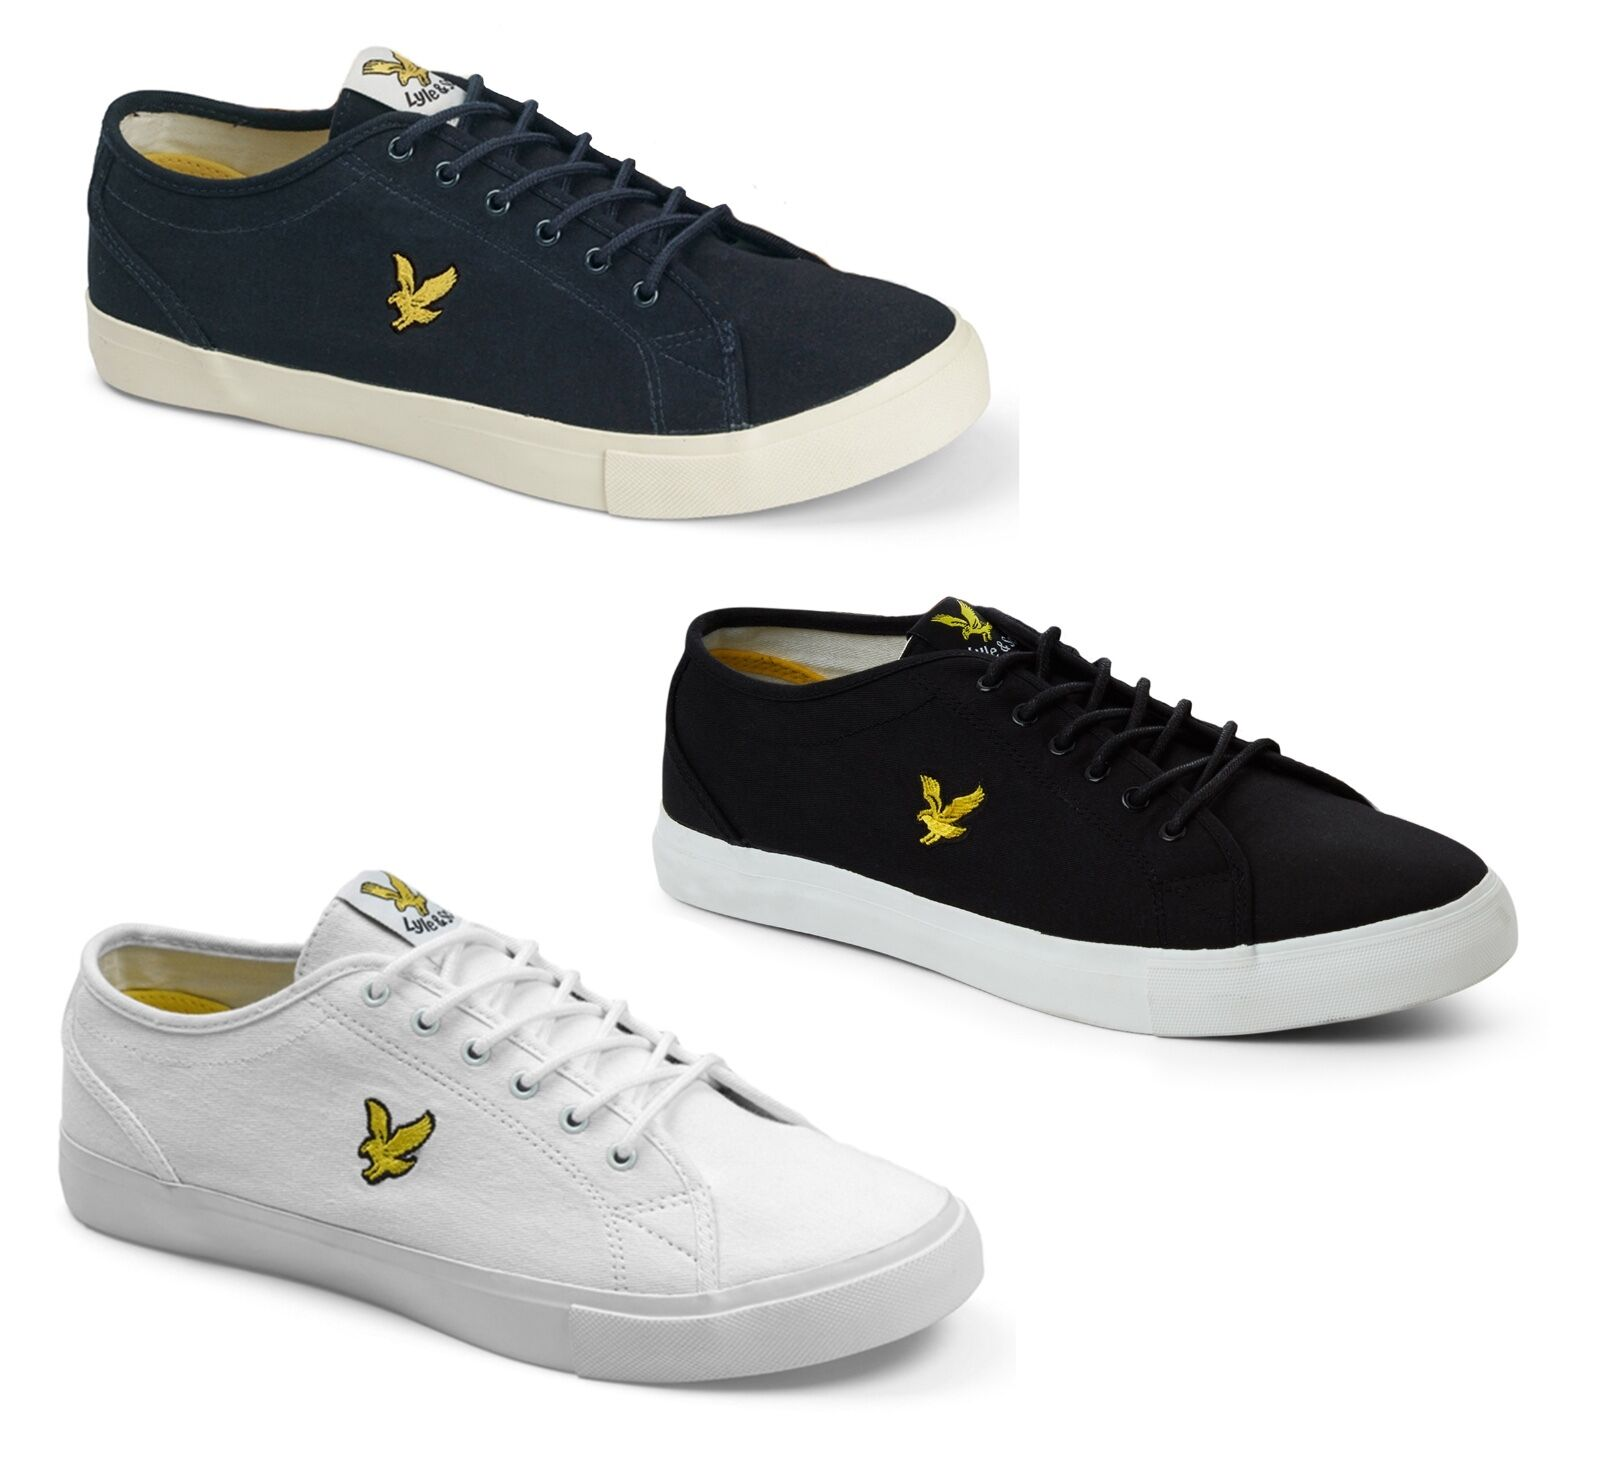 Lyle & Scott Canvas Teviot Twill Fashion Trainers Plimsolls Schuhes Yellow Eagle Trainers Fashion c17856